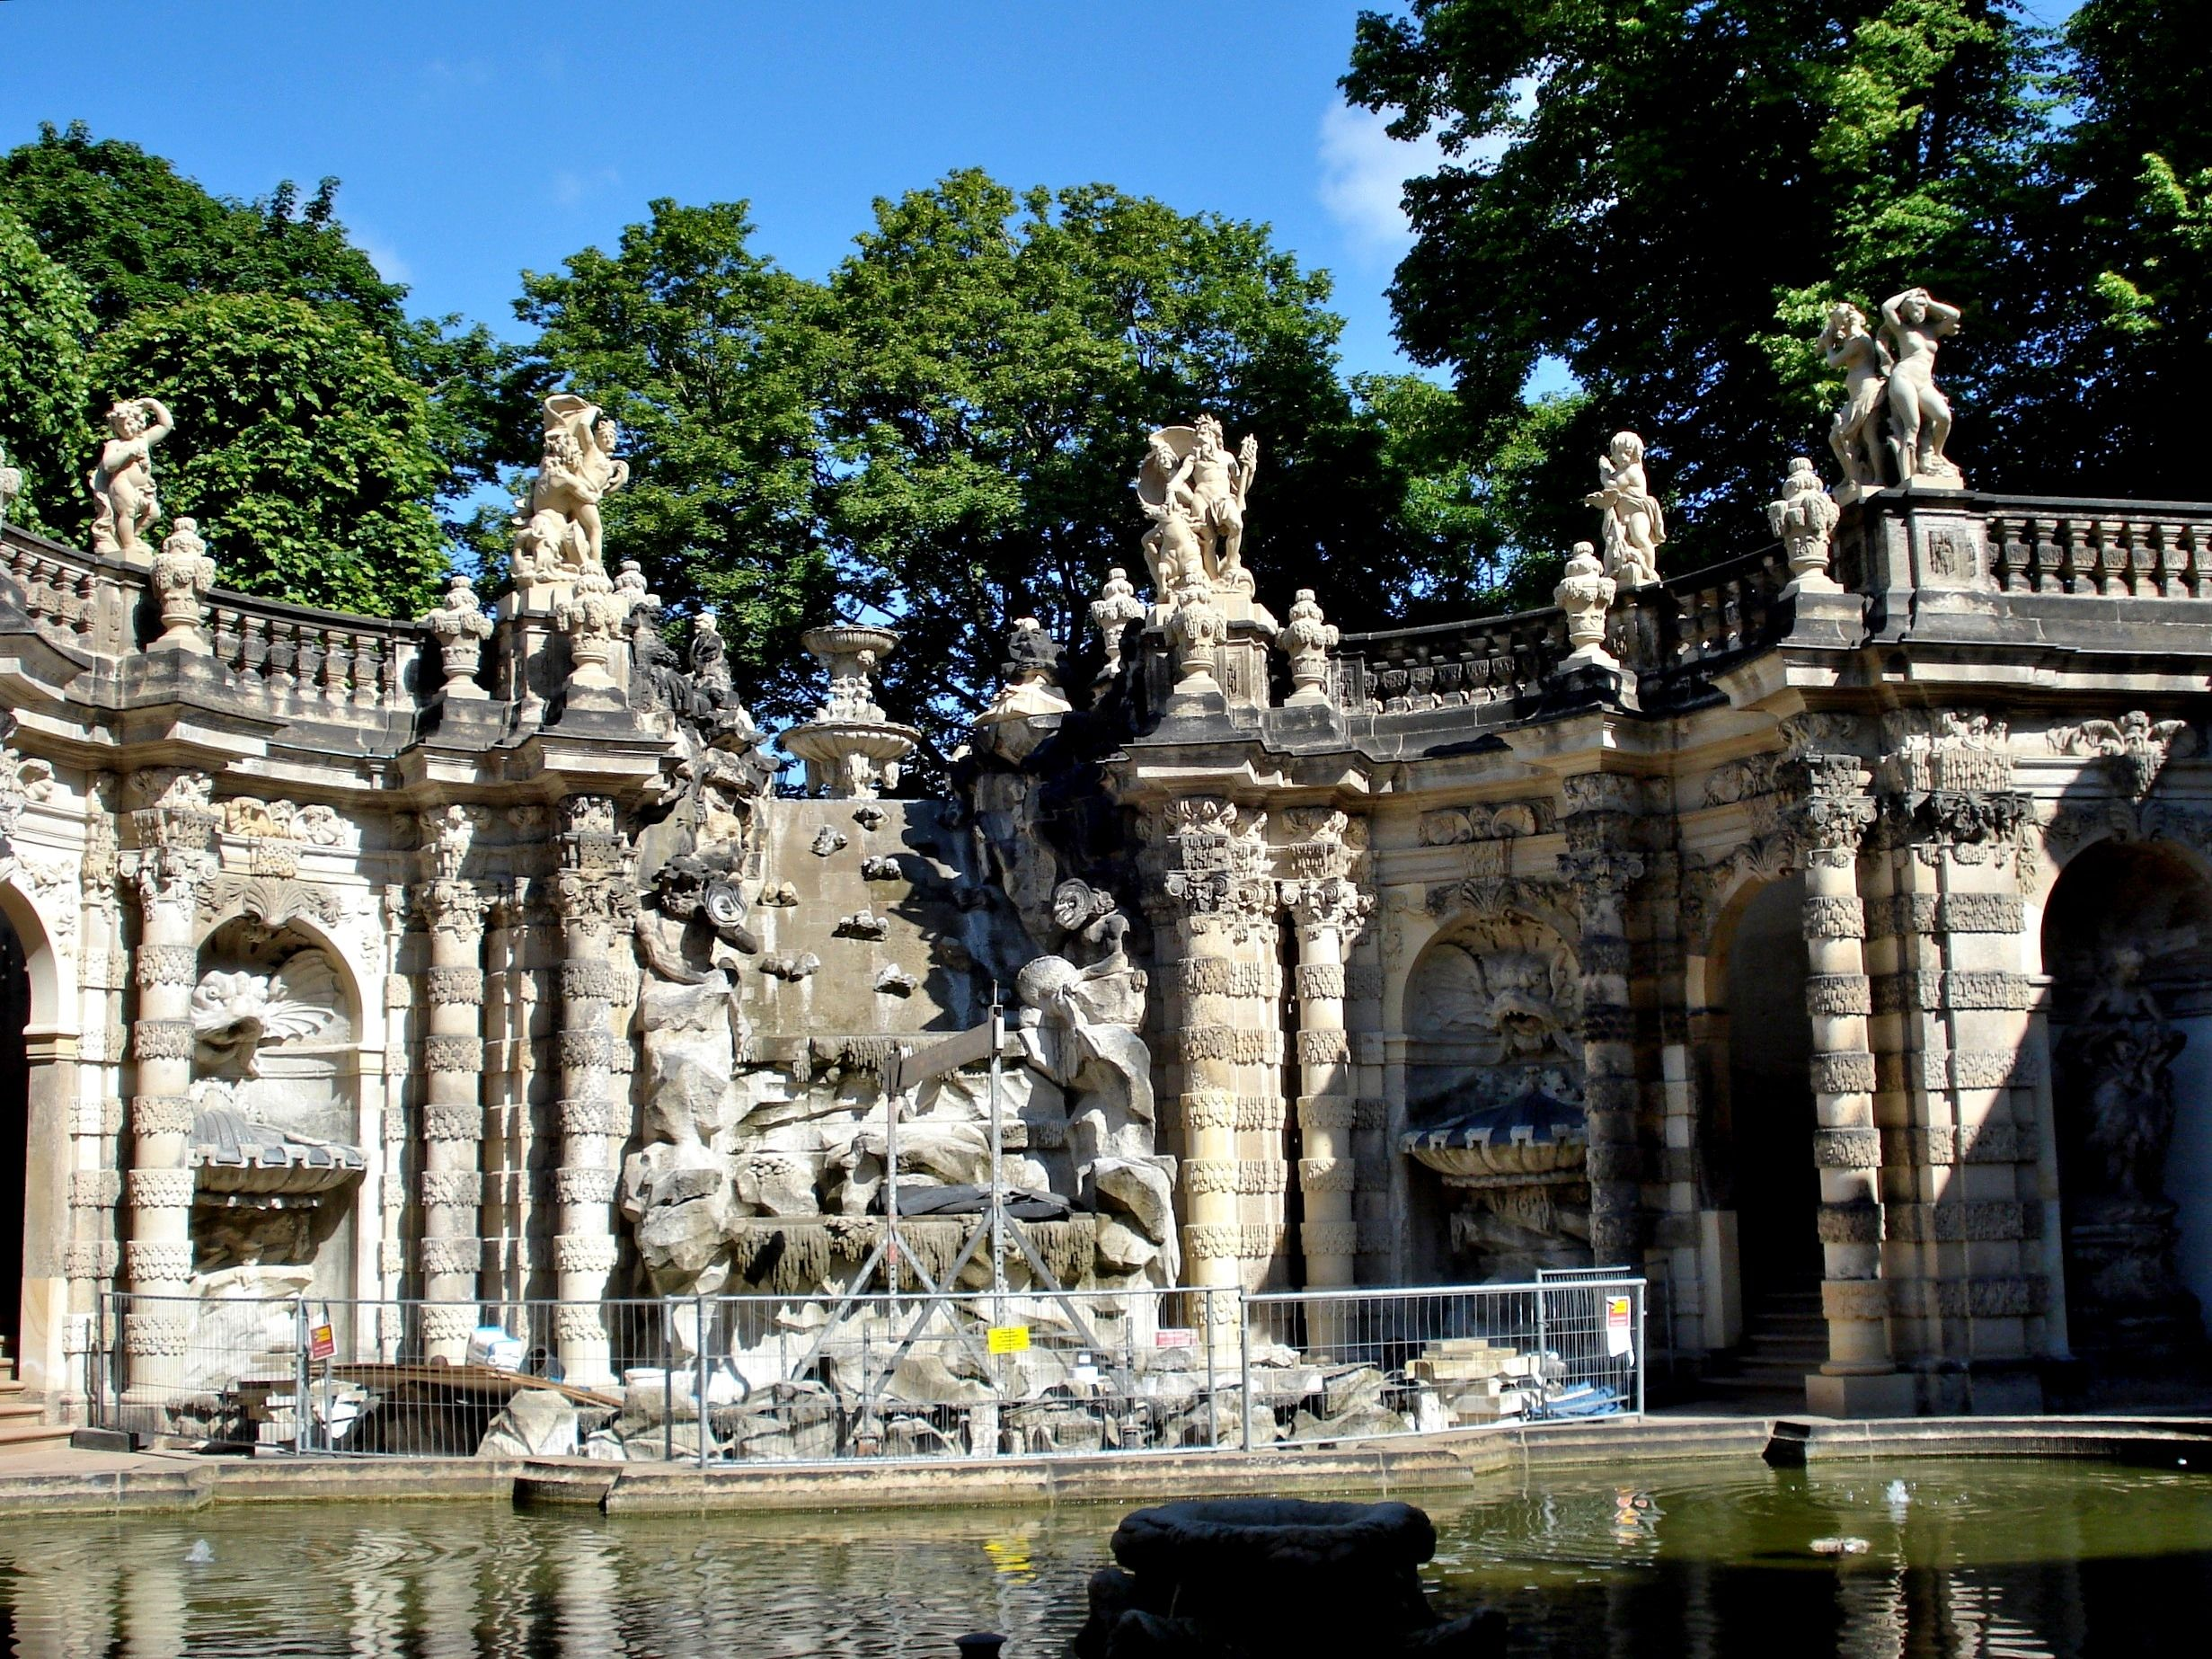 German Rococo Germany Nymphenbad The Zwinger 1710 1719 Dresden By Matthaus Daniel Poppelmann 1662 1736 Sculpture Of The Zwinger Carved By Baltha Rococo